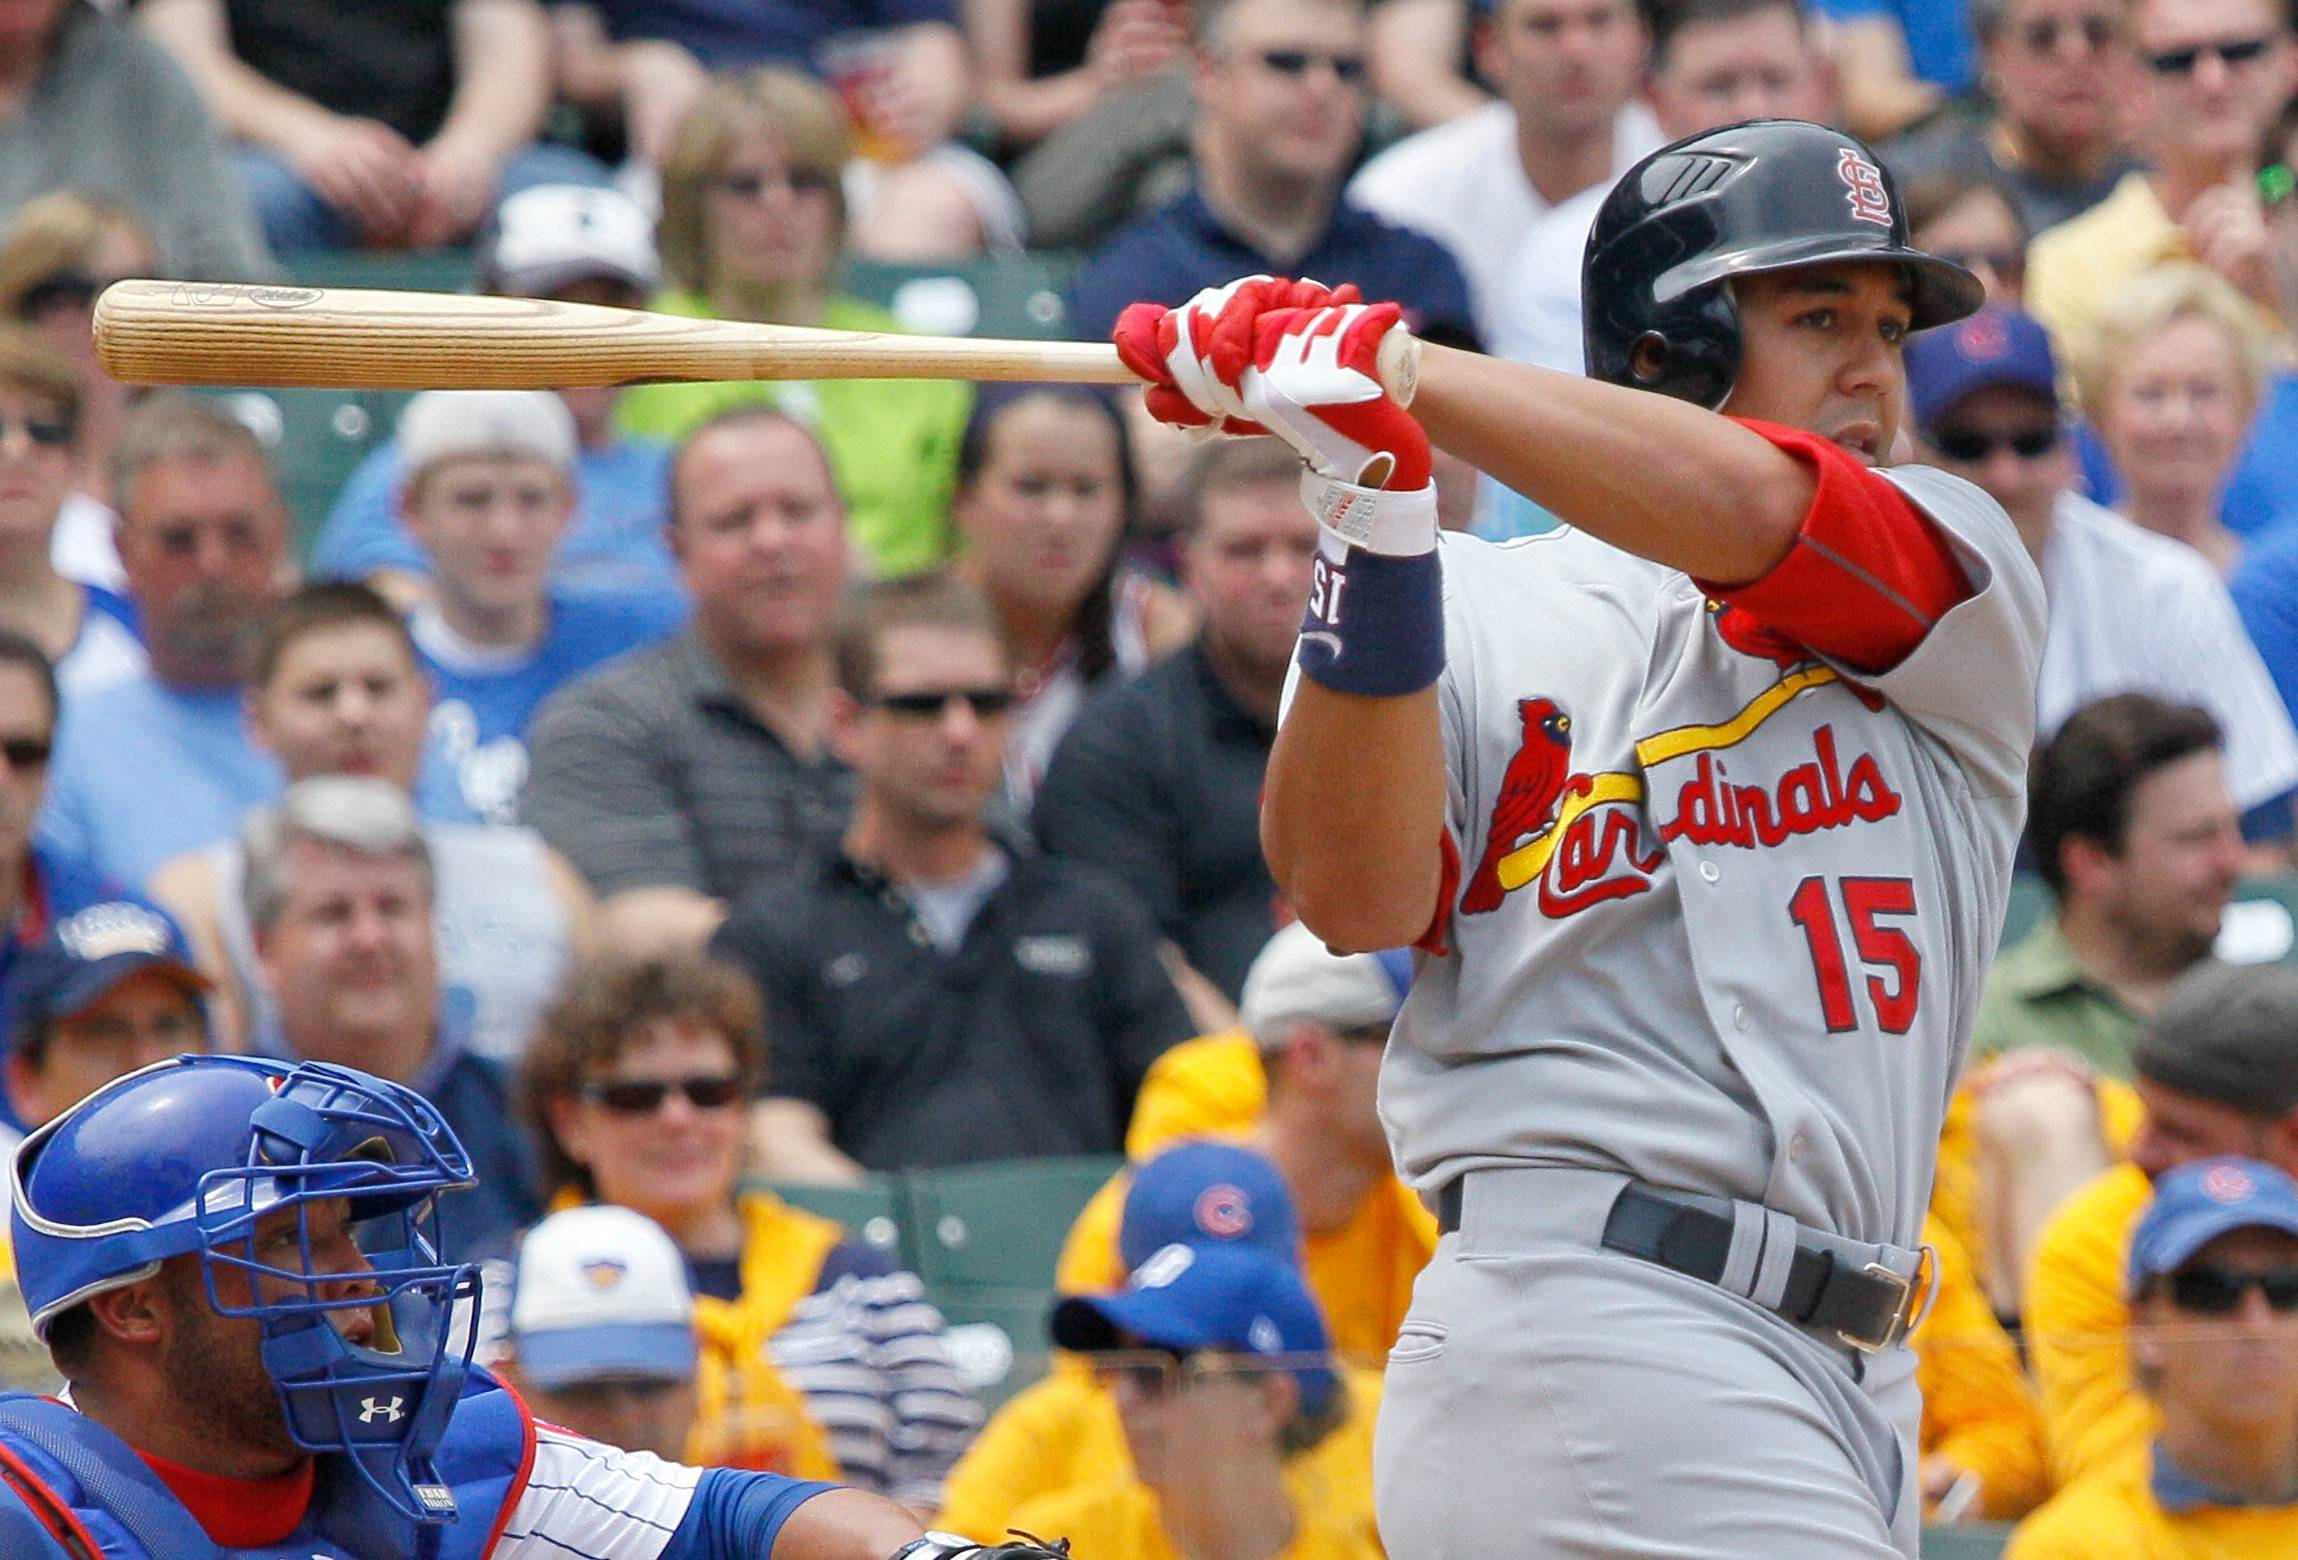 Former St. Louis Cardinals outfielder Jon Jay singed a one-year contract with the Cubs this week.